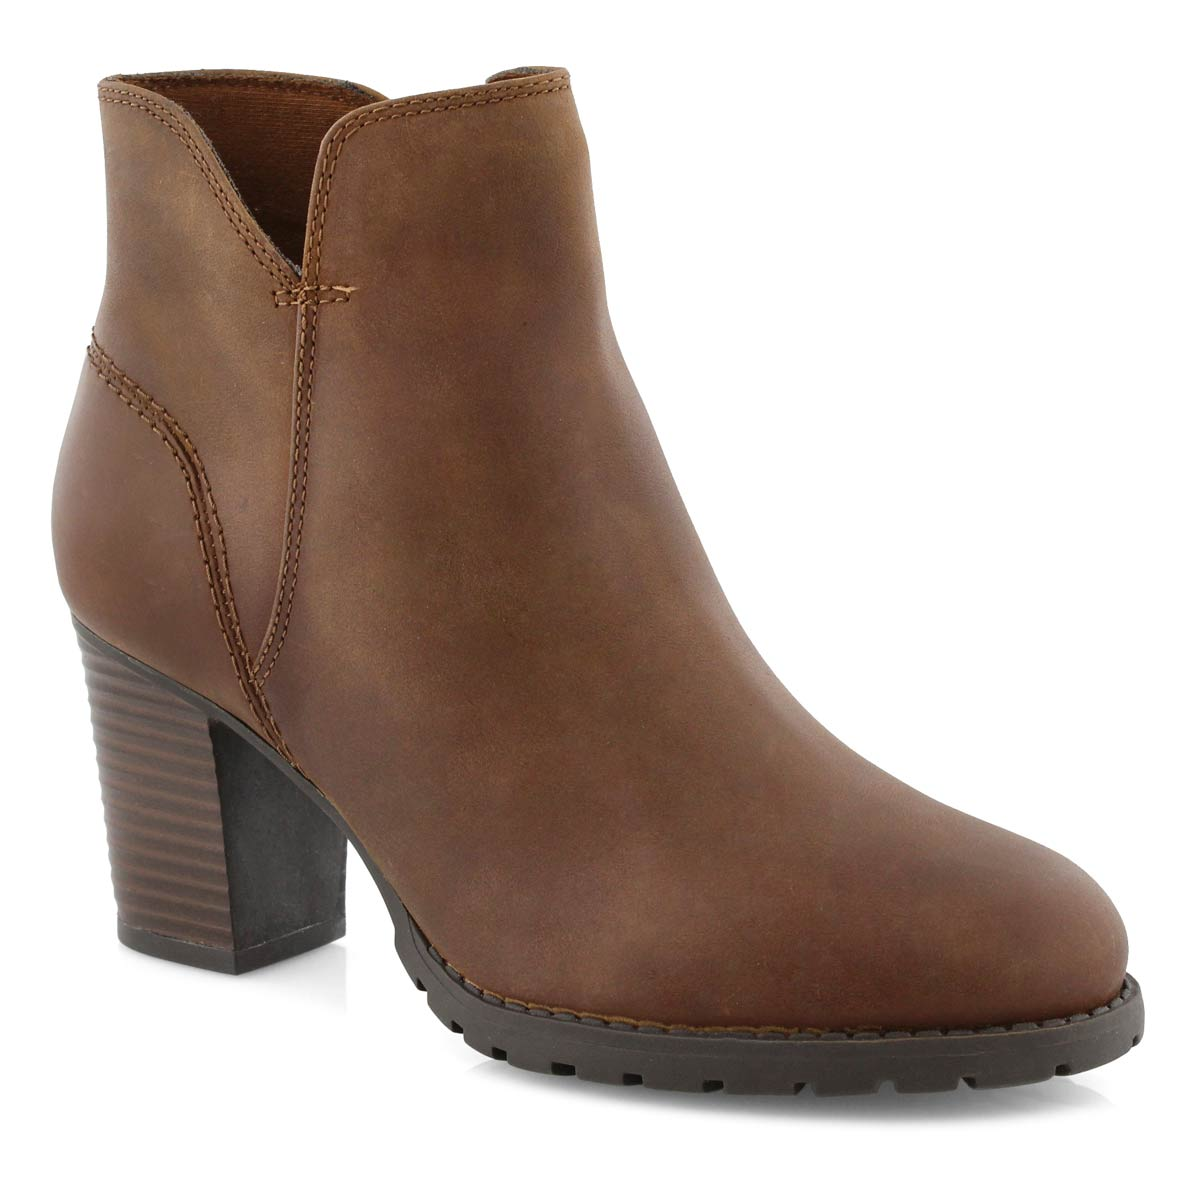 Lds Verona Trish dark tan ankle boot